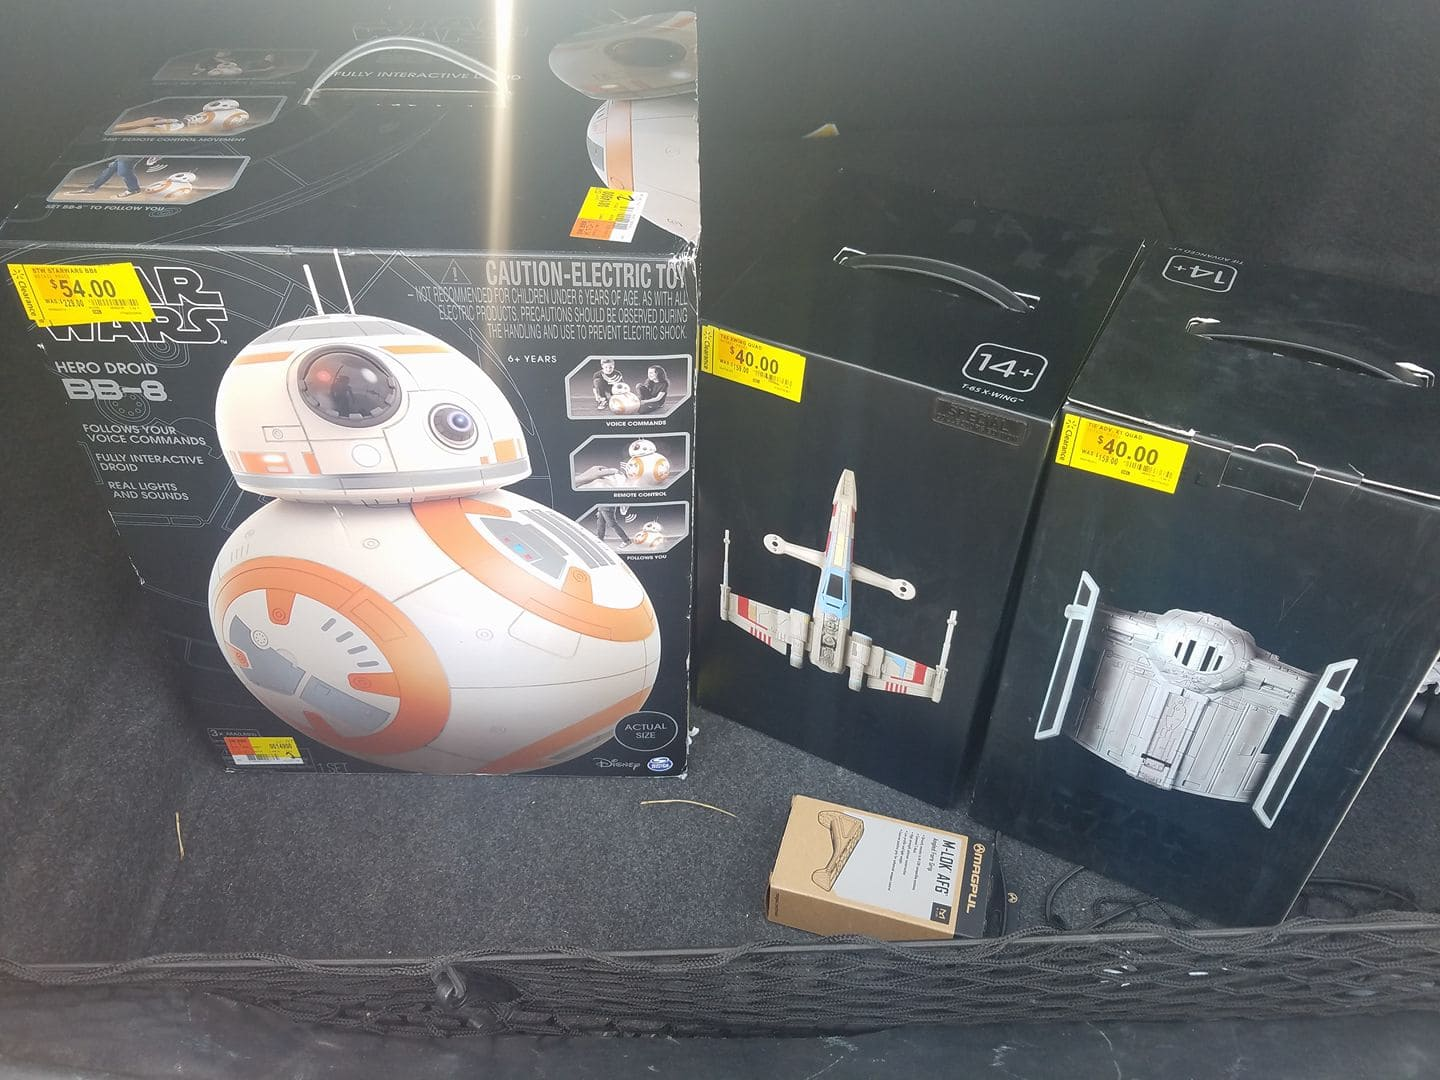 Hero Droid BB-8 $54, Propel Tie Fighter Drone $40 and Propel X-Wing Drone $40 on clearance at Walmart YMMV